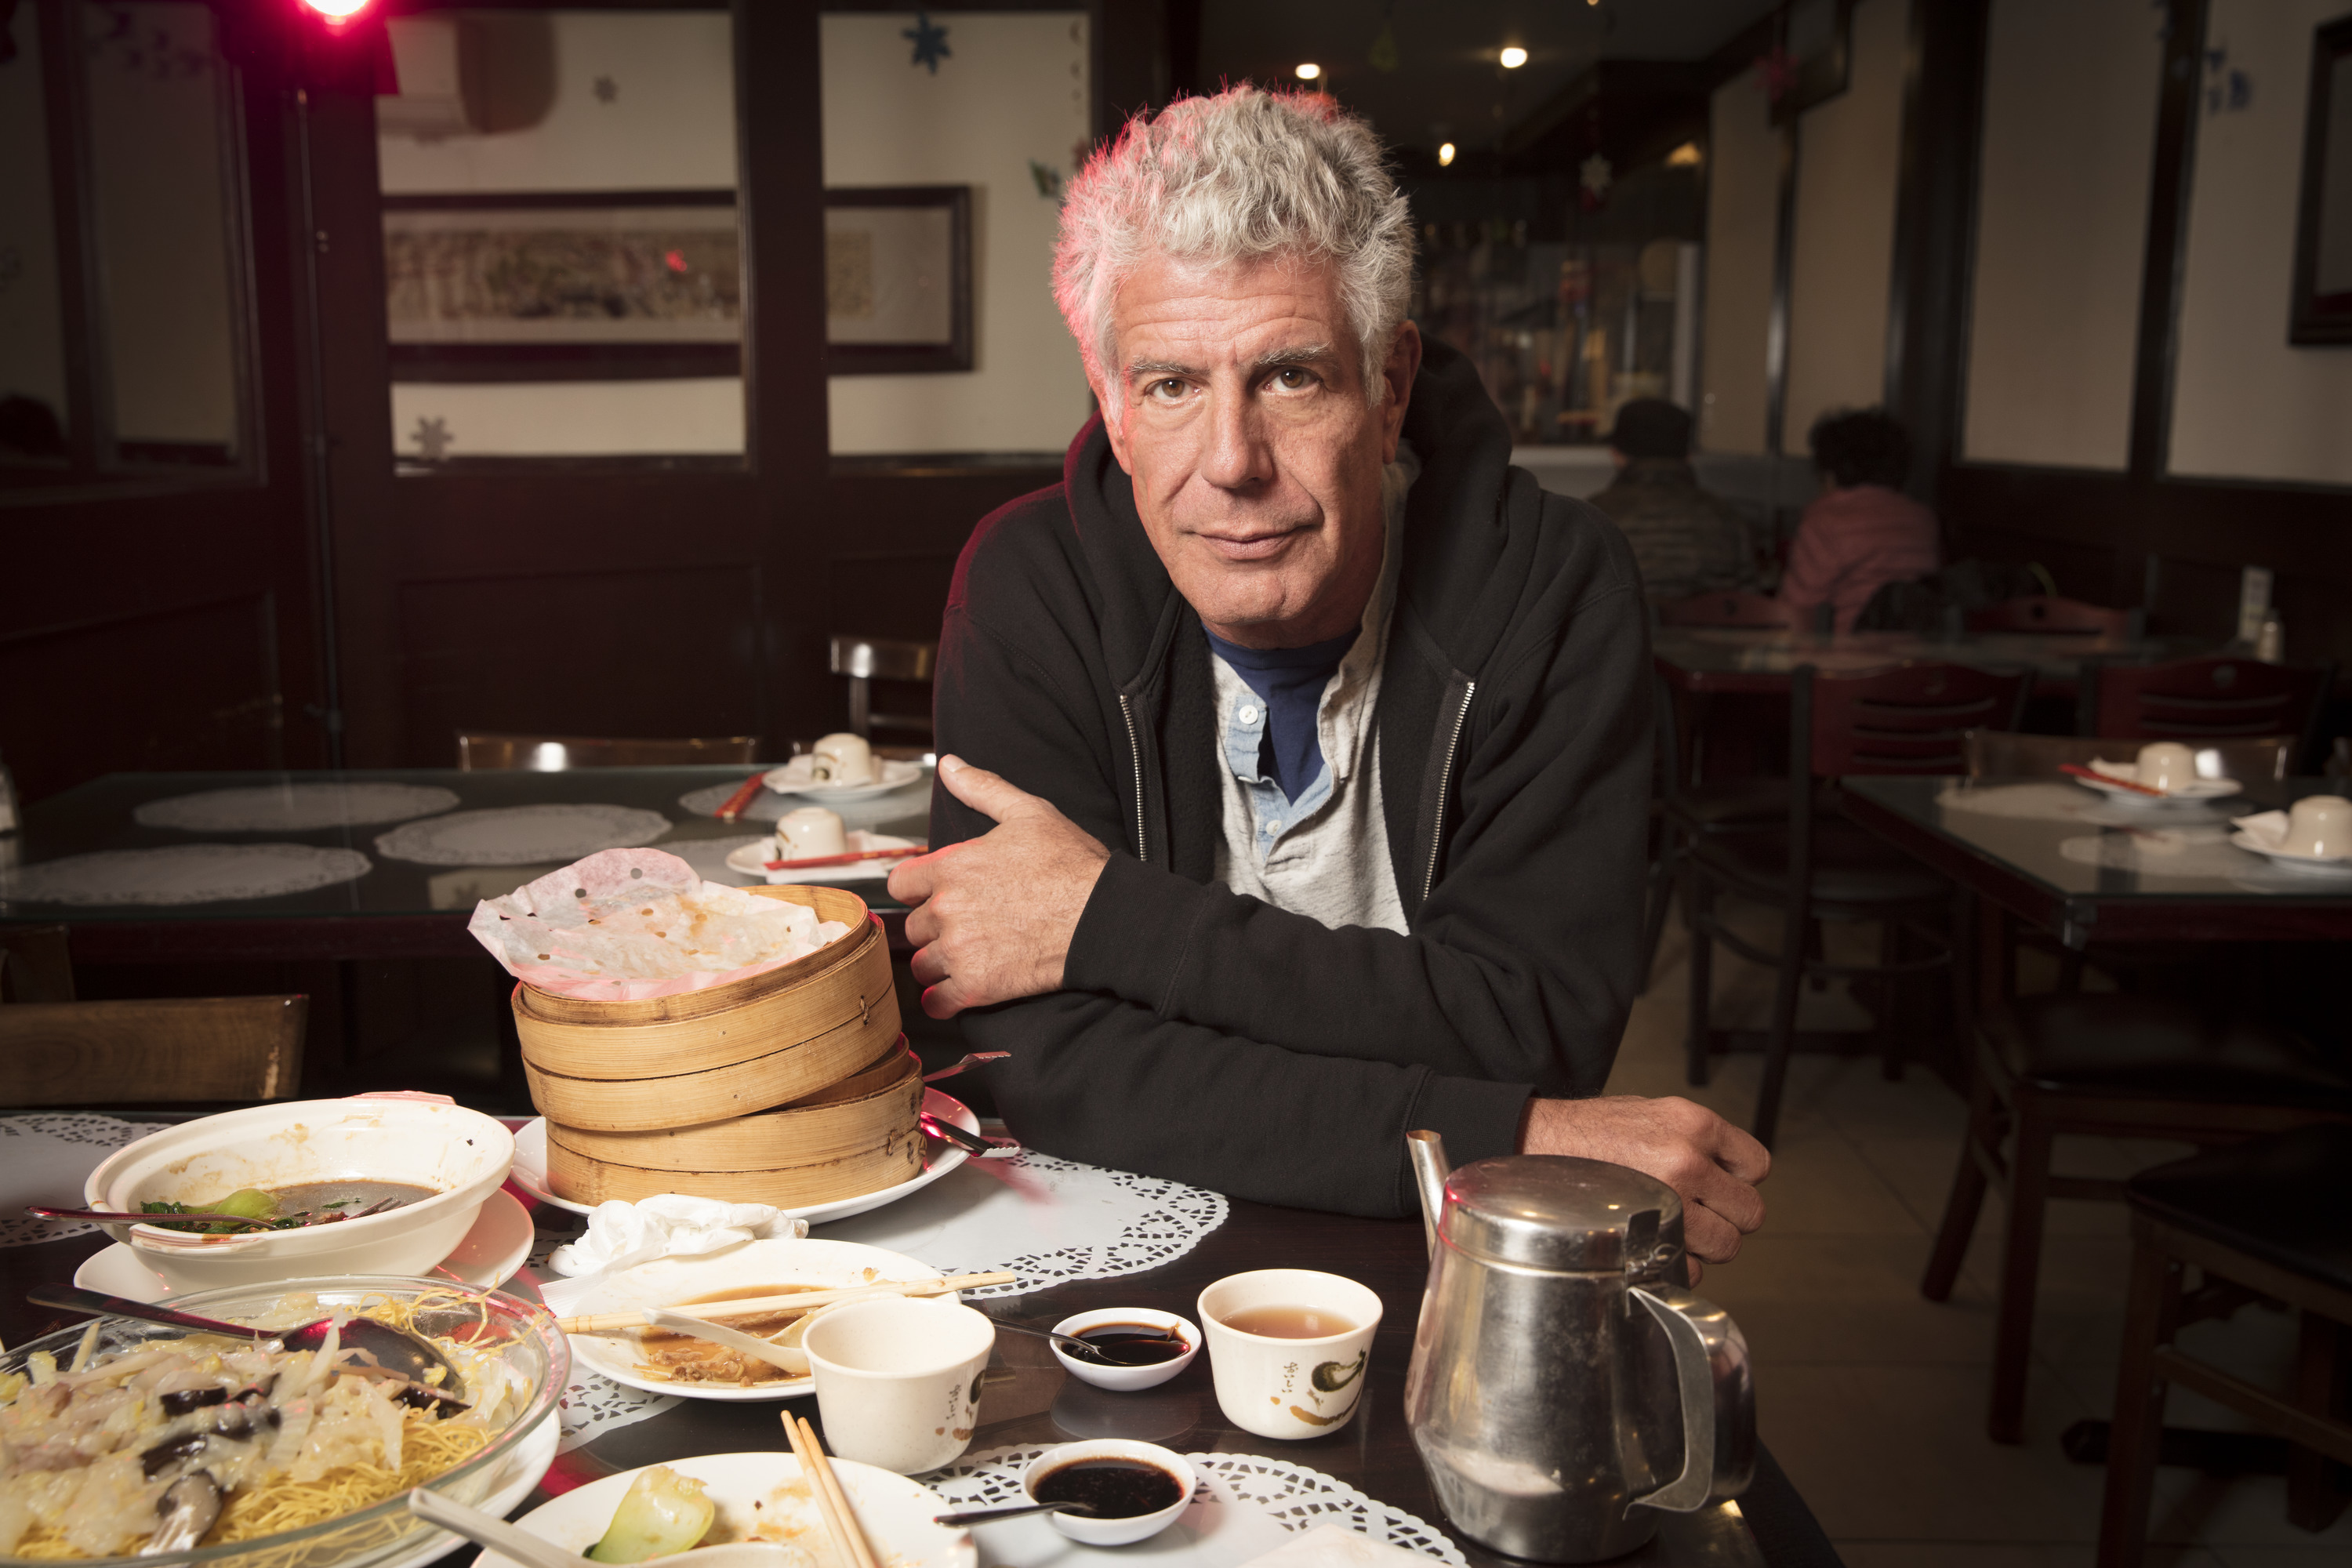 Bourdain on Queens: 'This is a Wonderland' Because of Street Food